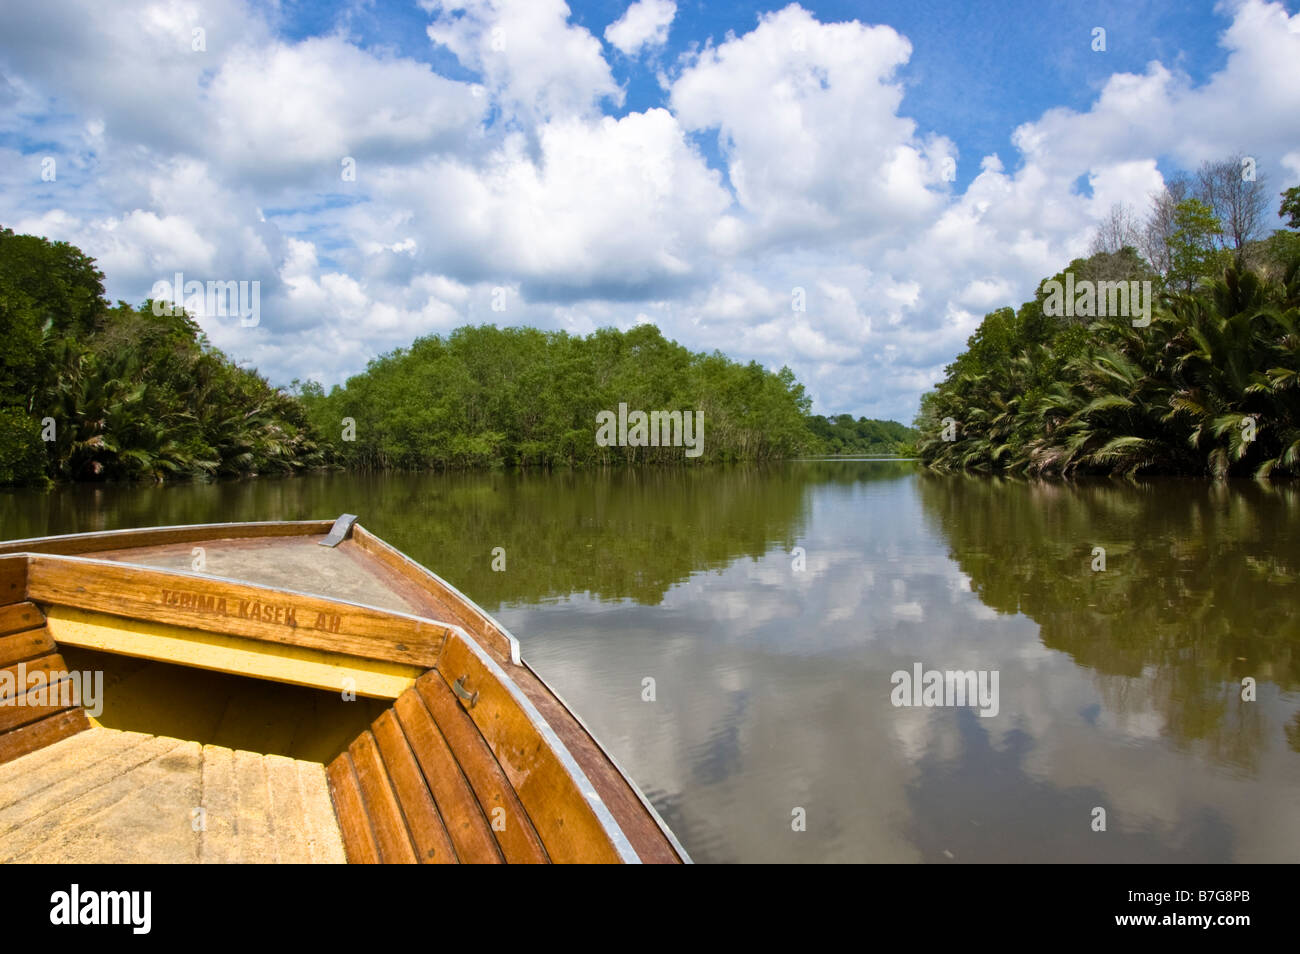 Boat on tour of Brunei river and Kampung Ayer water village in Bandar Seri Begawan, Brunei - Stock Image